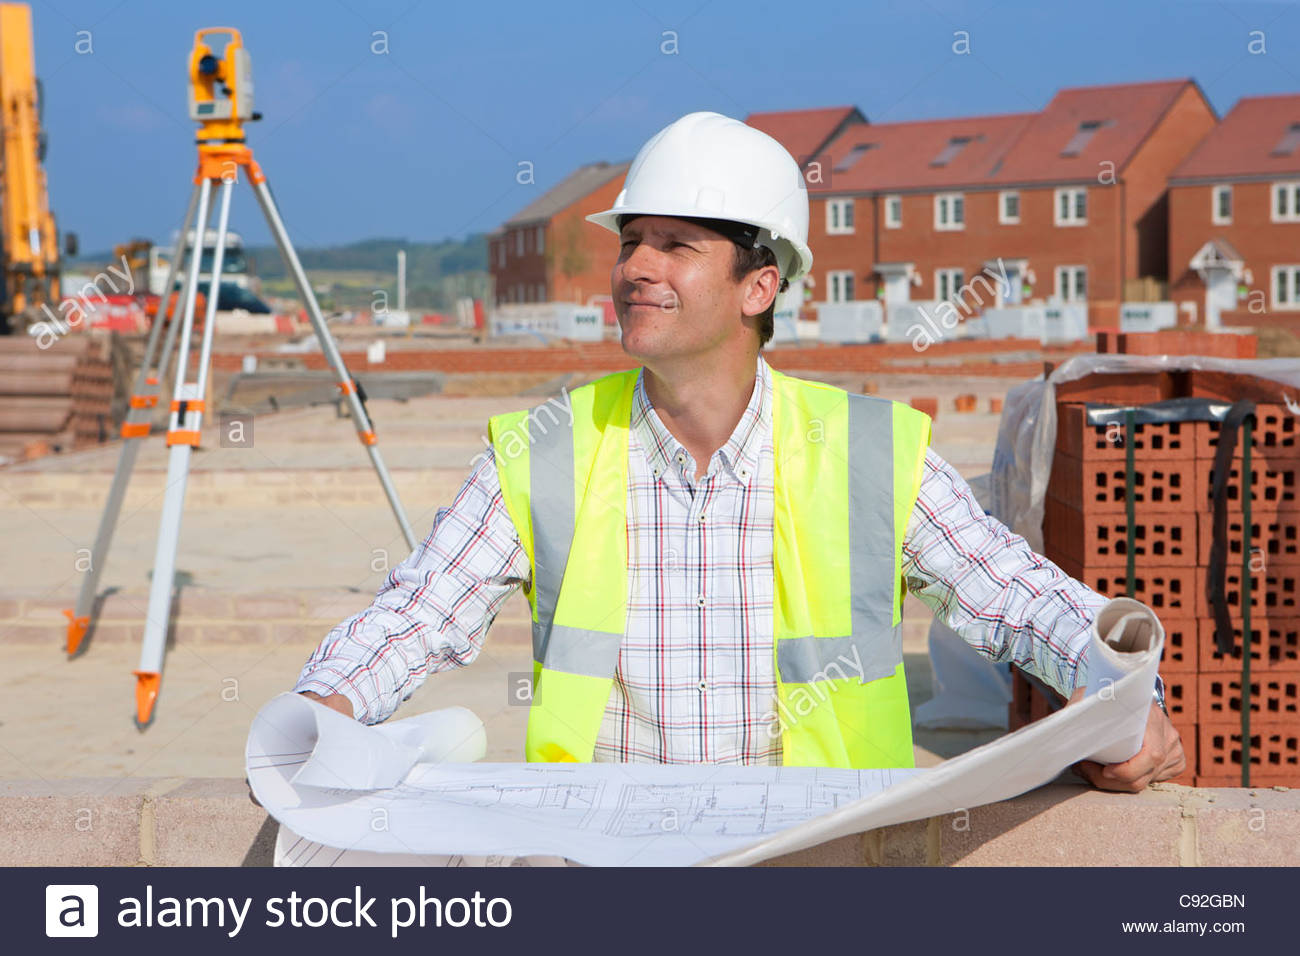 Architect with blueprints at construction site - Stock Image